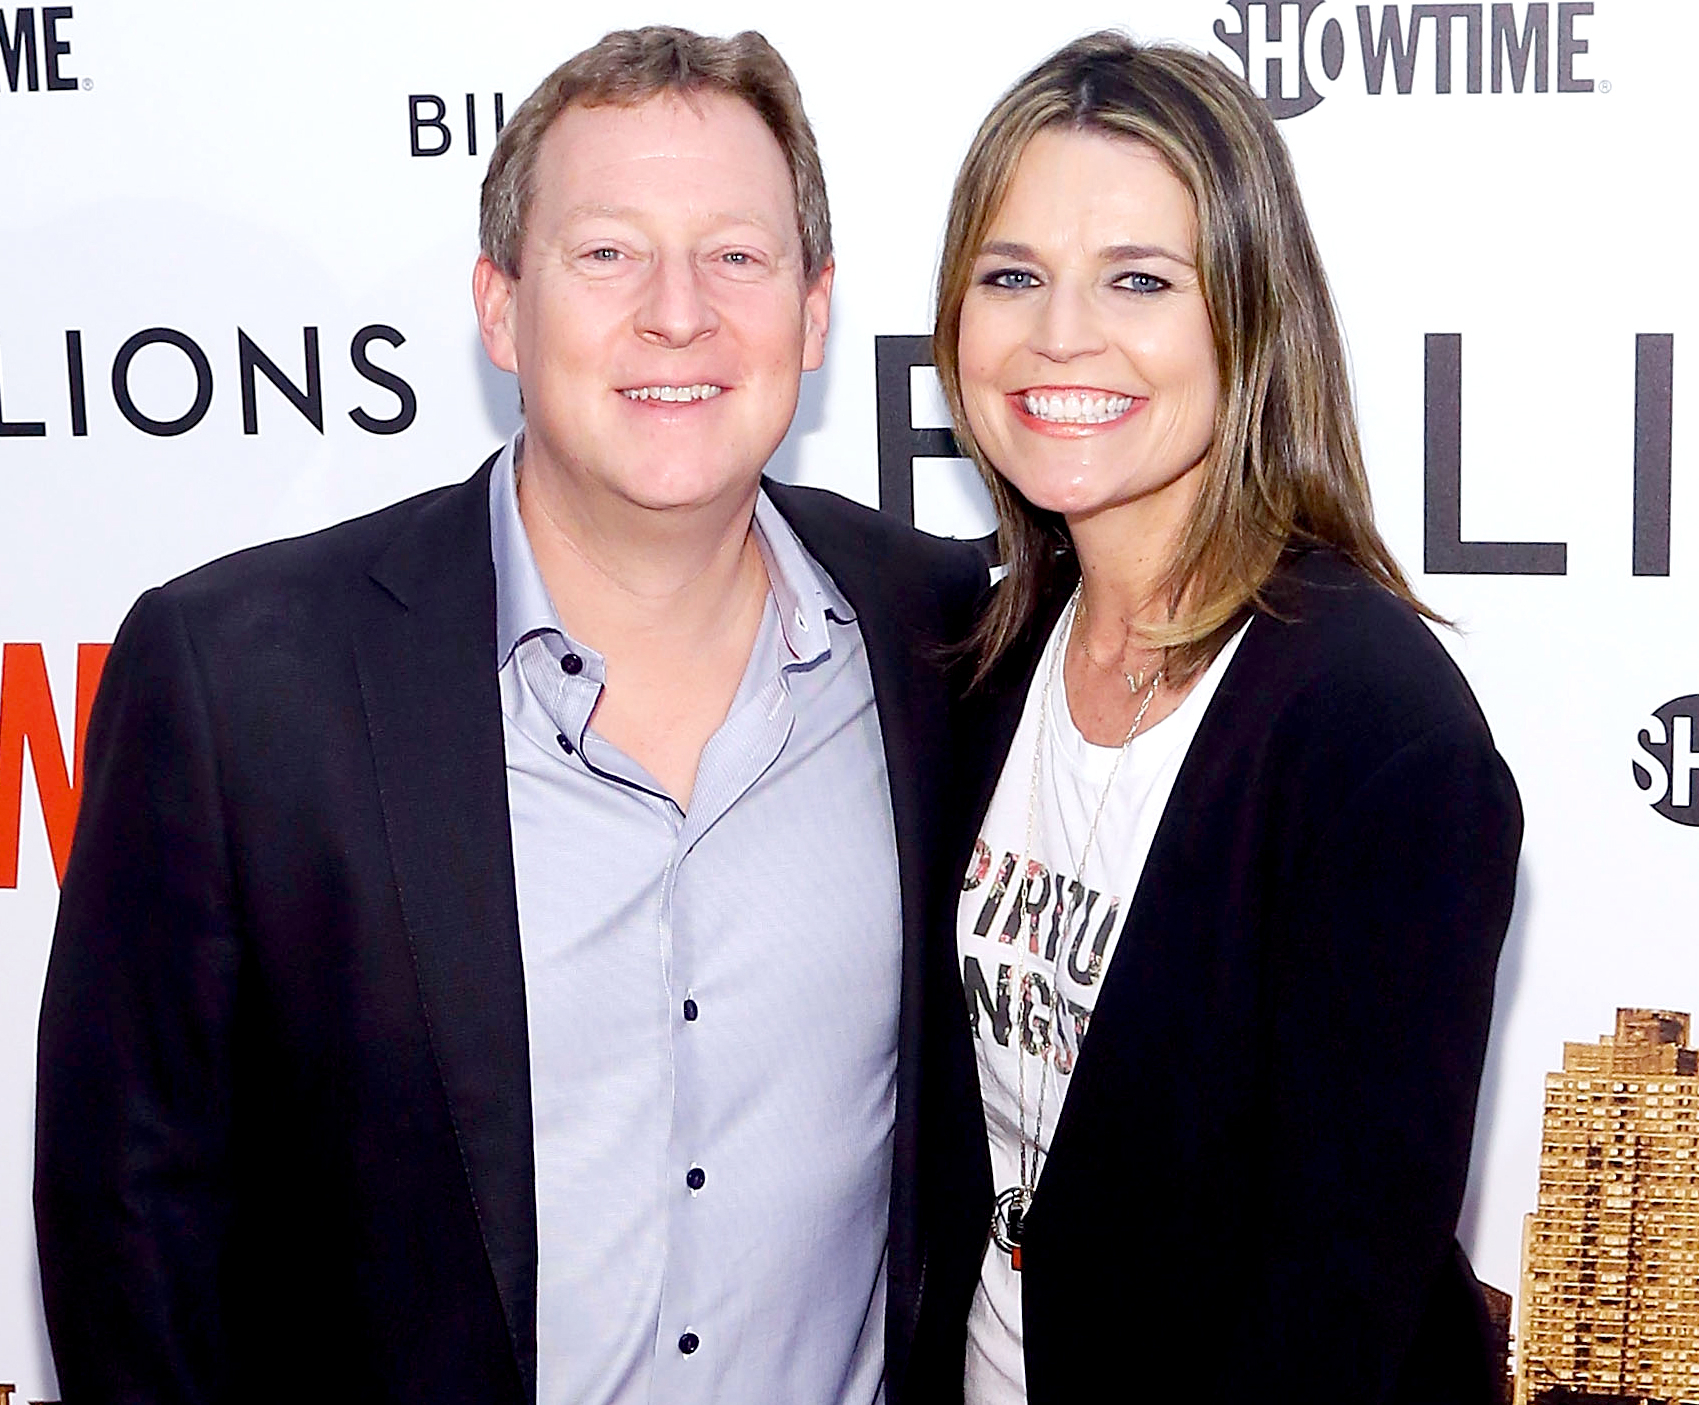 Mike Feldman and Savannah Guthrie attend Showtime's 'Billions' series premiere at Museum of Modern Art on January 7, 2016 in New York City.